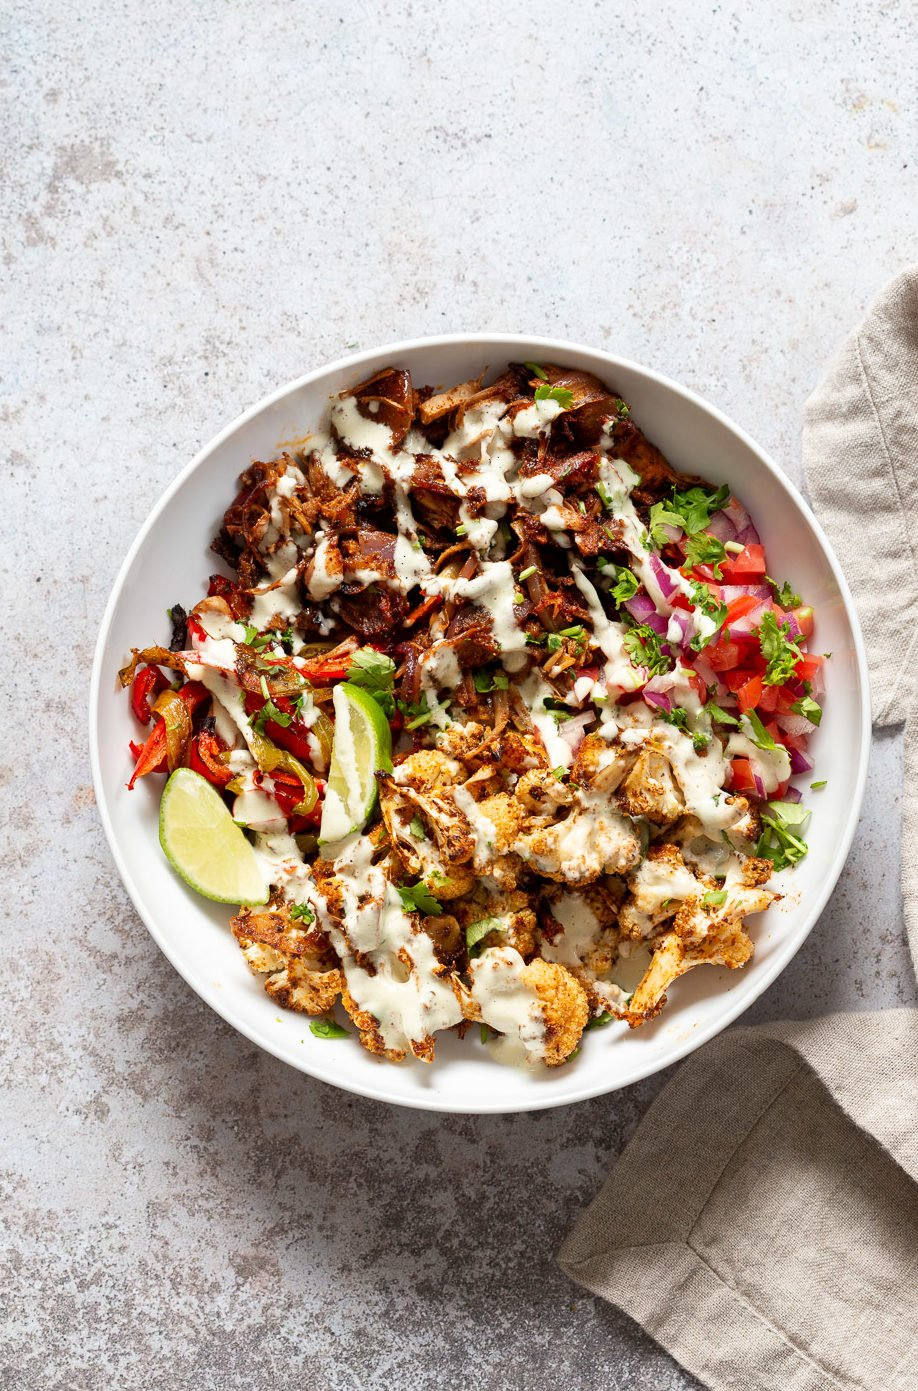 Chili Lime Roasted Veggies & Jackfruit drizzled with jalapeno cream sauce in a White Bowl